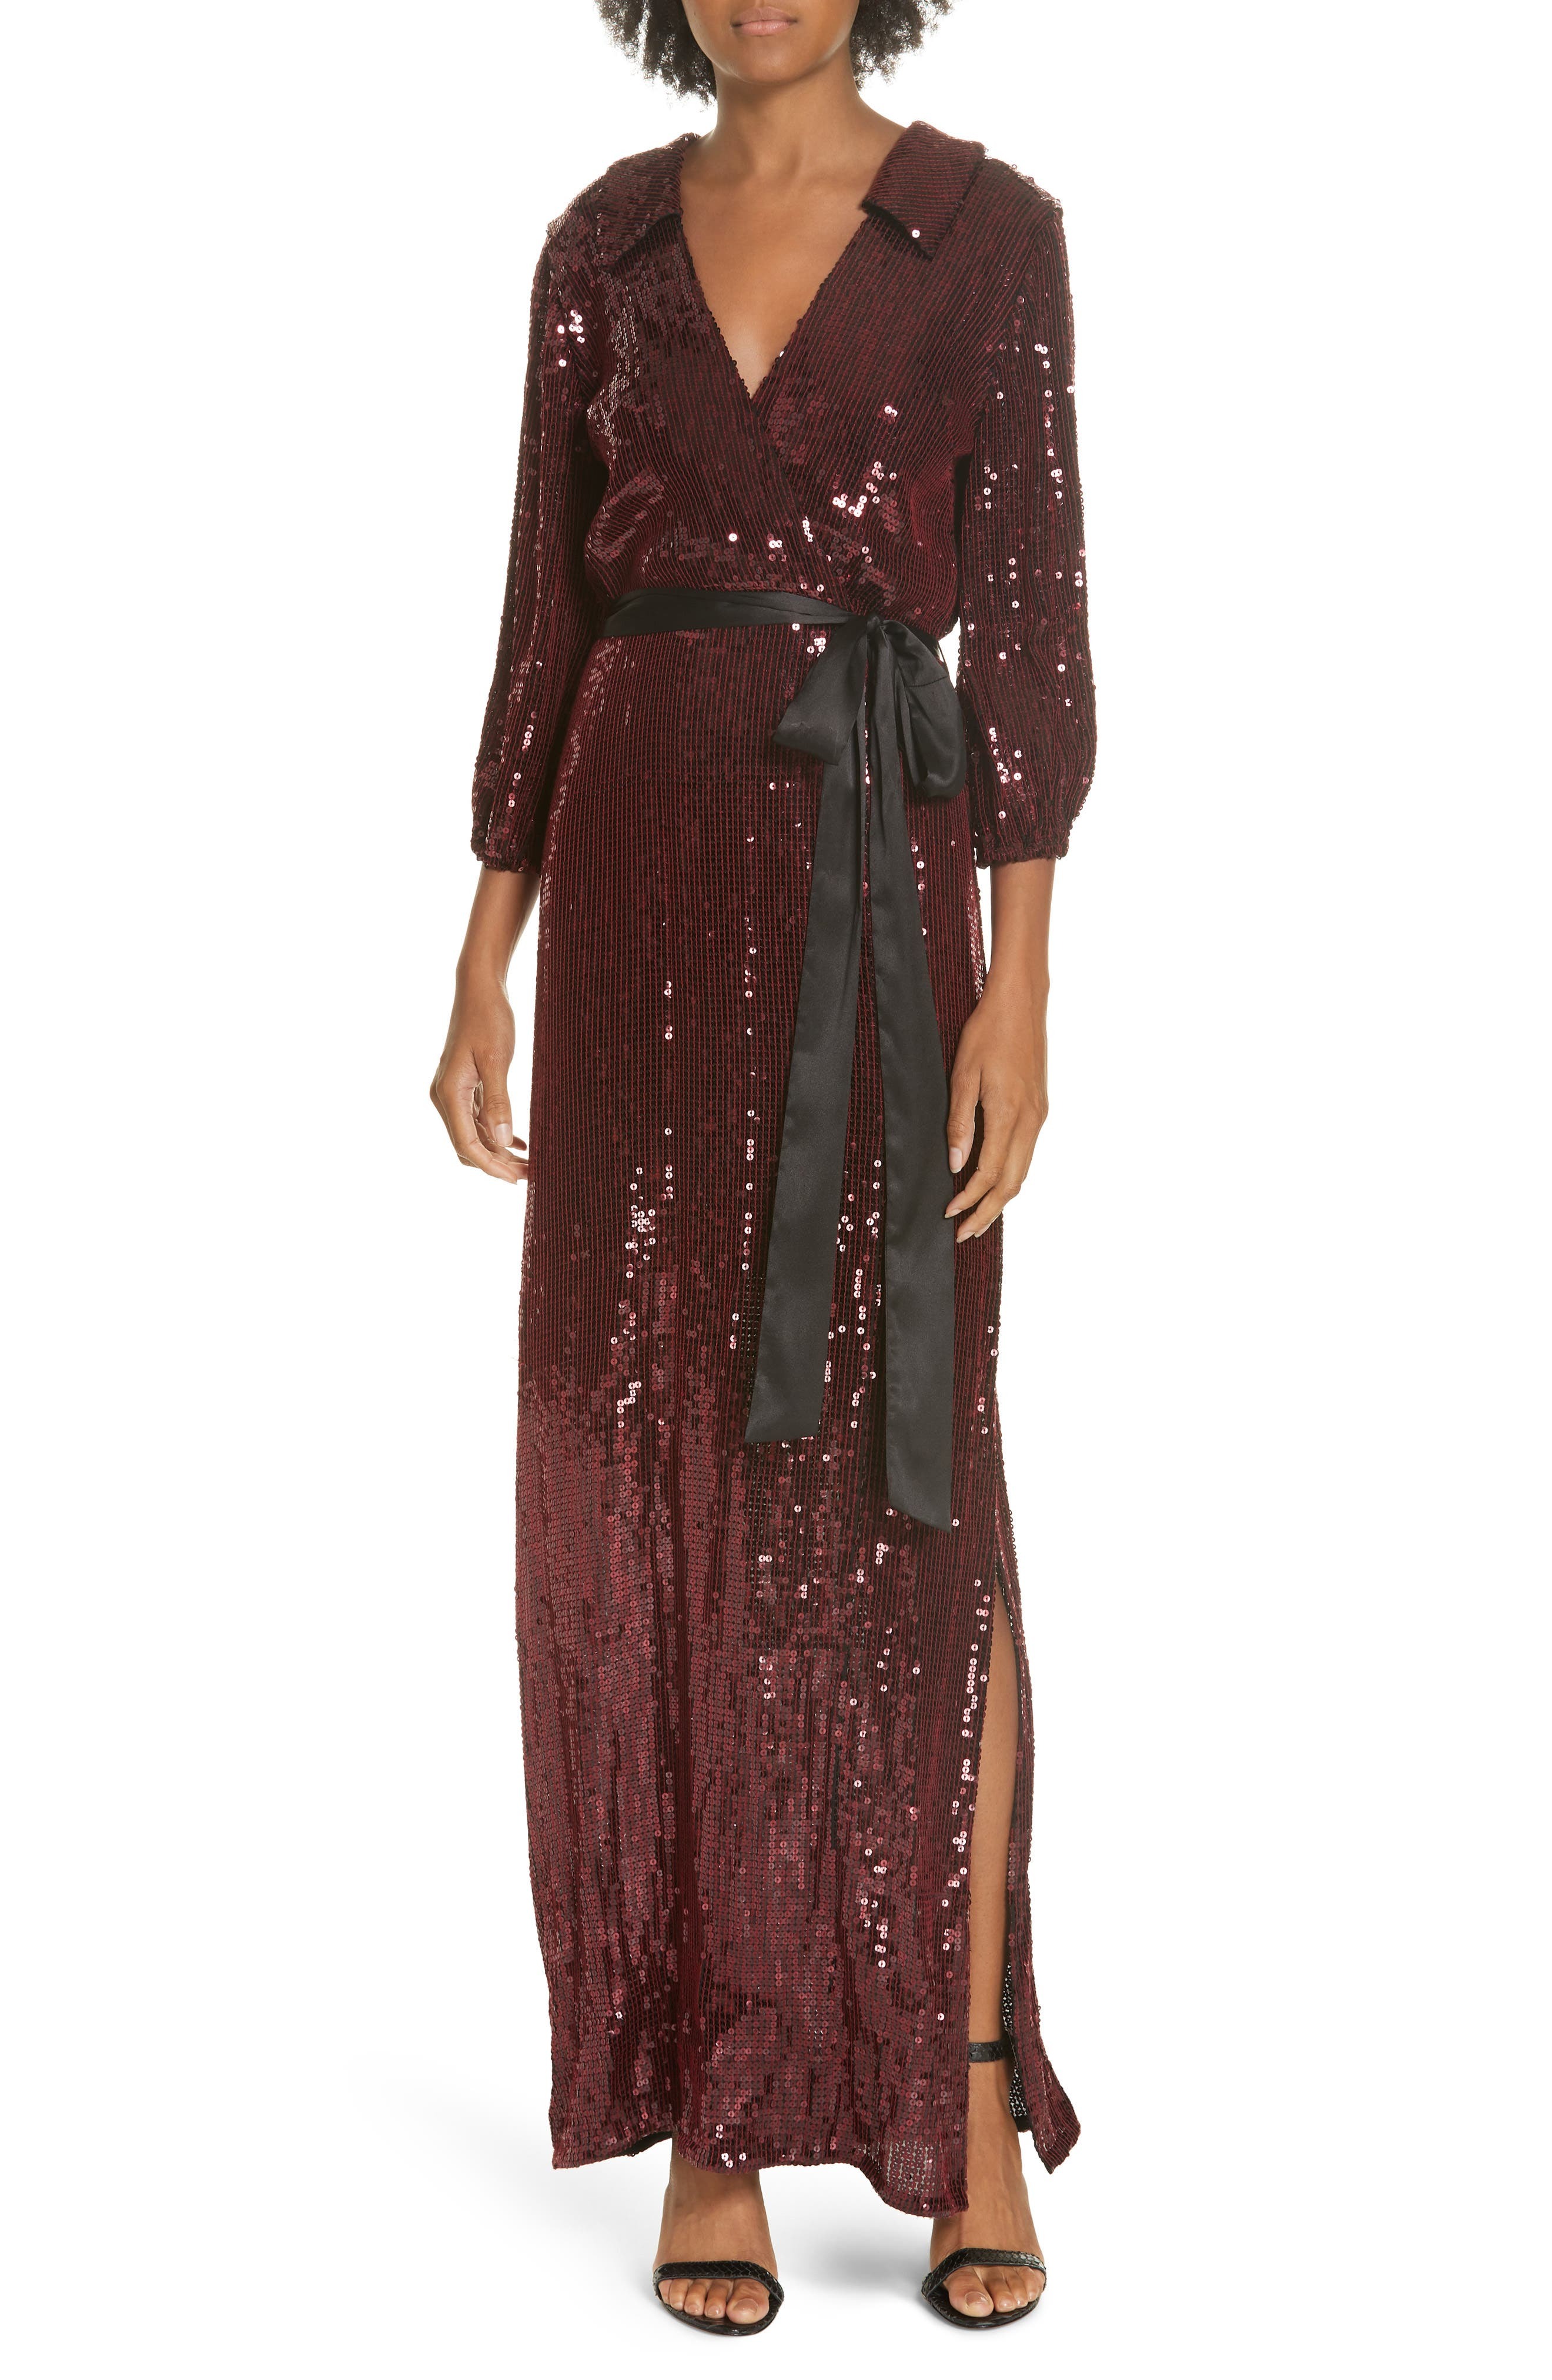 70s Prom, Formal, Evening, Party Dresses Womens Alice  Olivia Bayley Sequin Maxi Shirtdress $278.00 AT vintagedancer.com